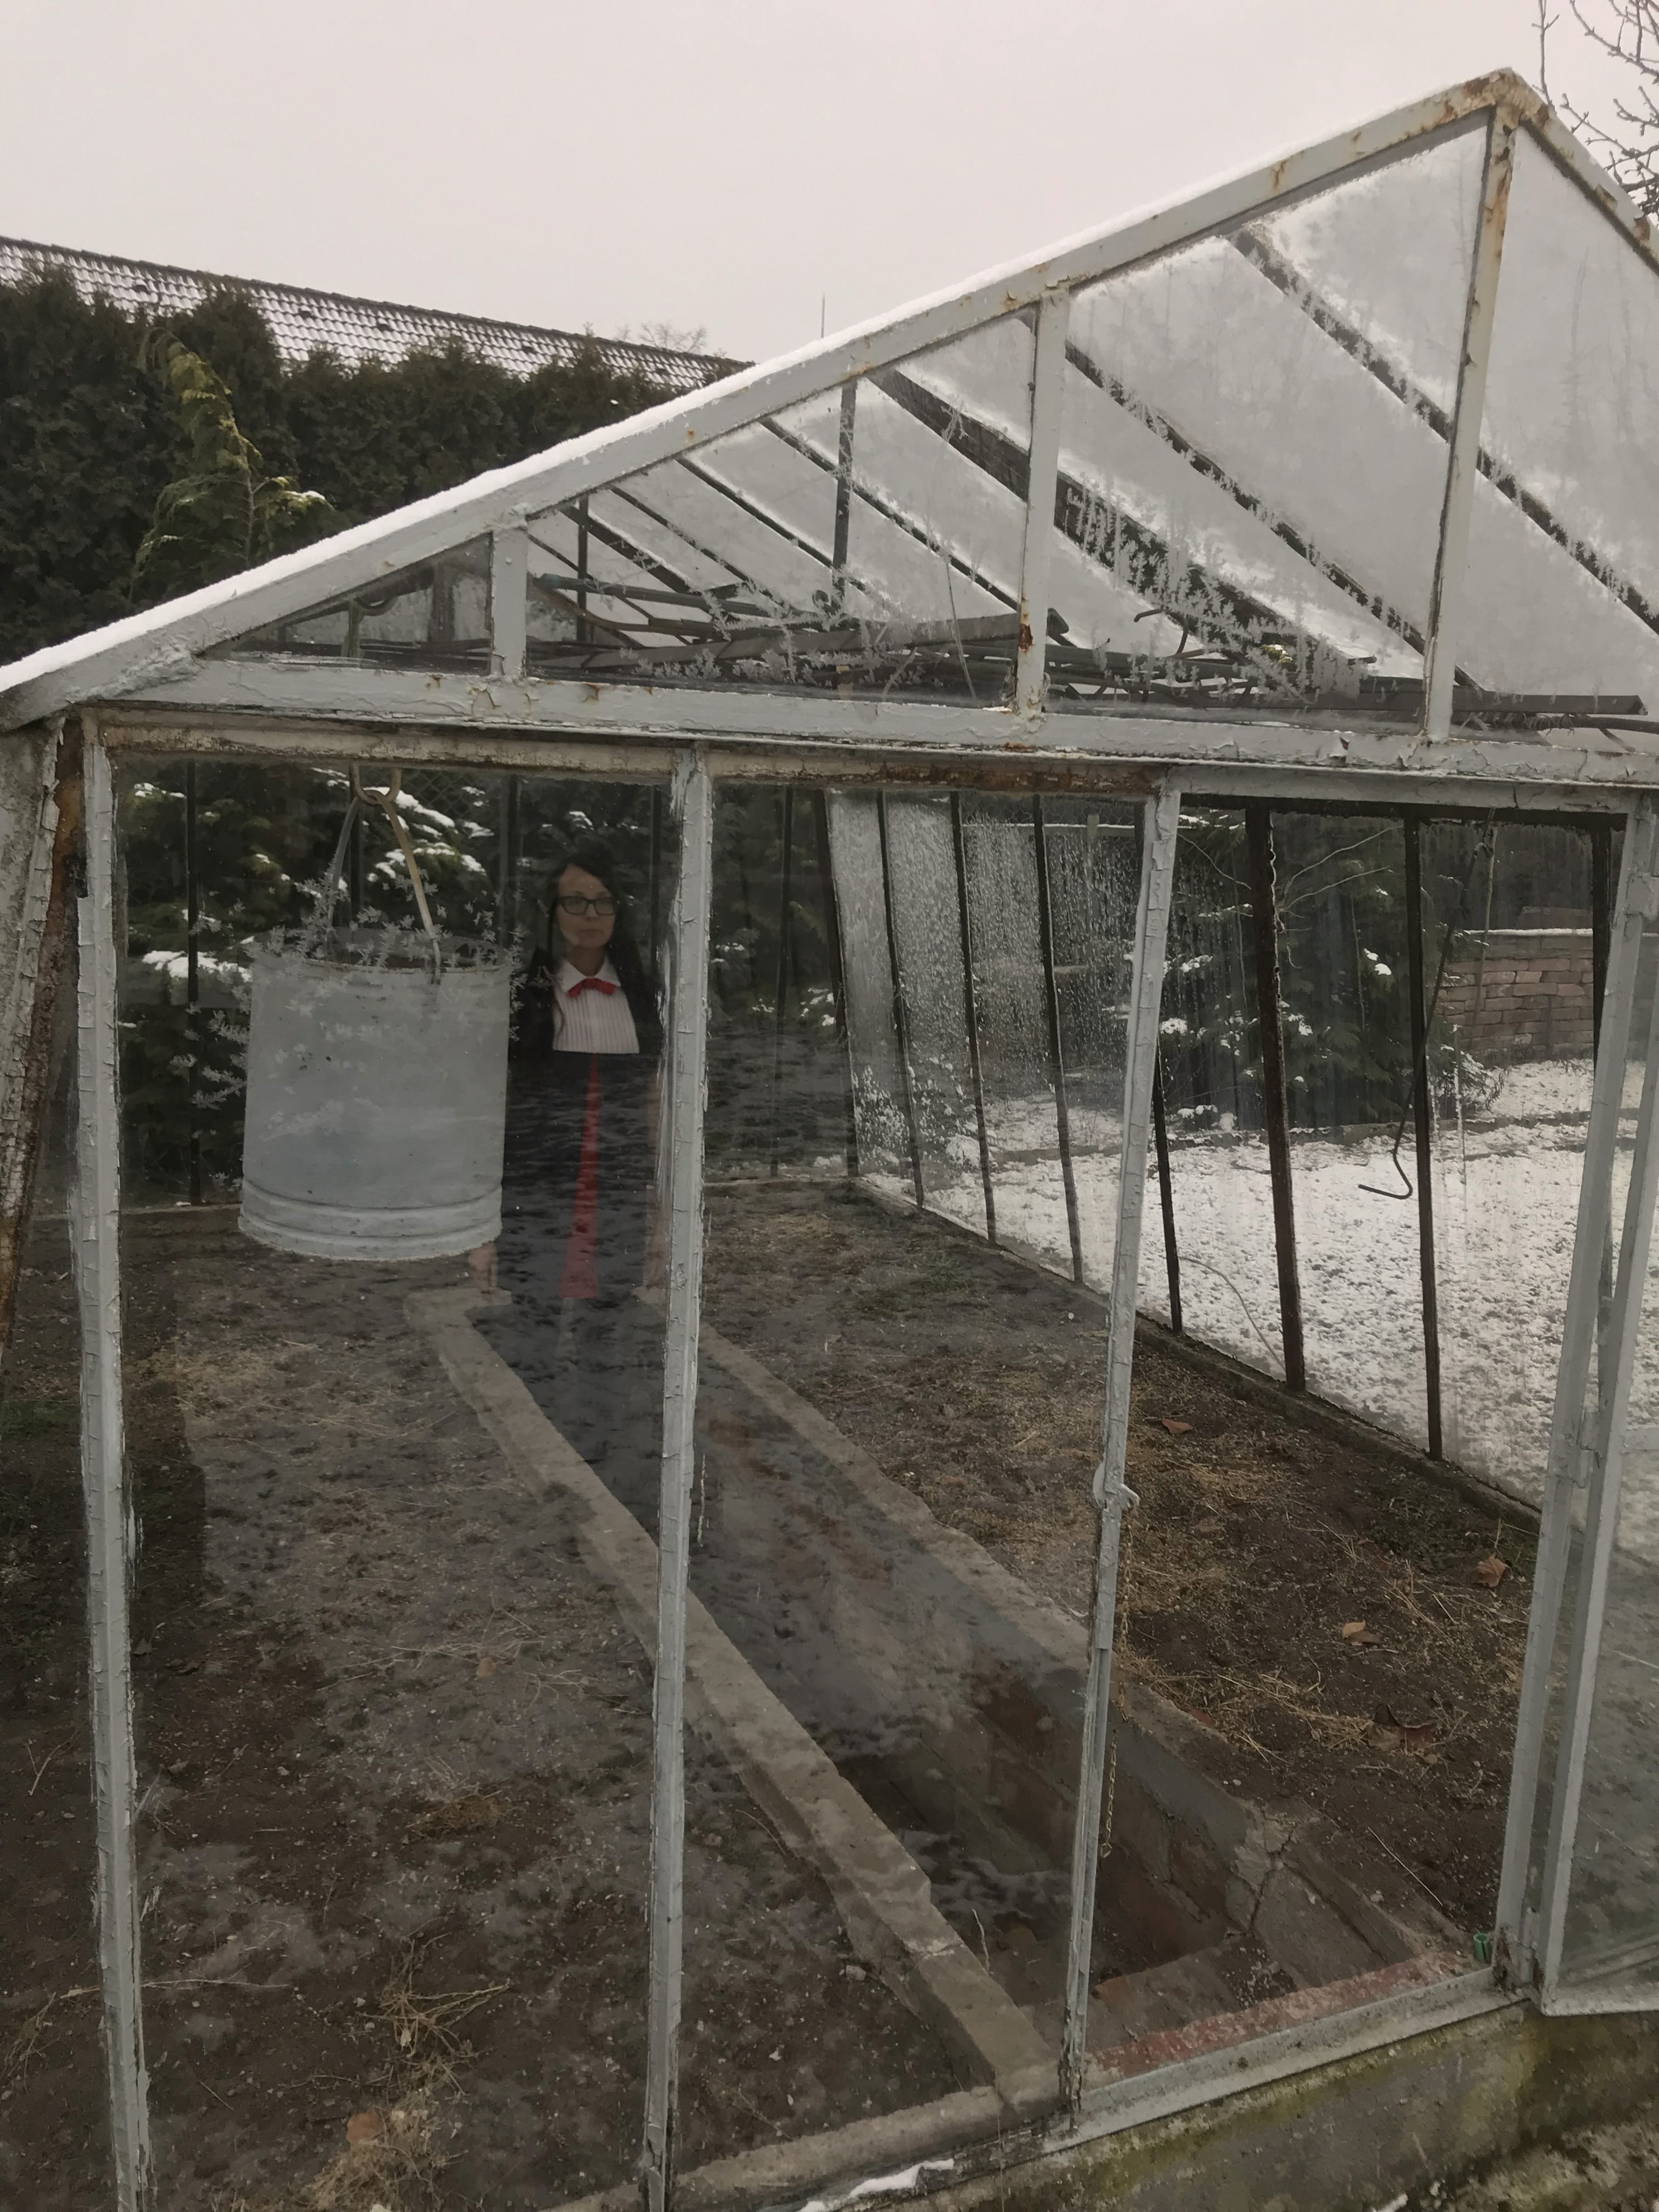 Vectomov inside a greenhouse